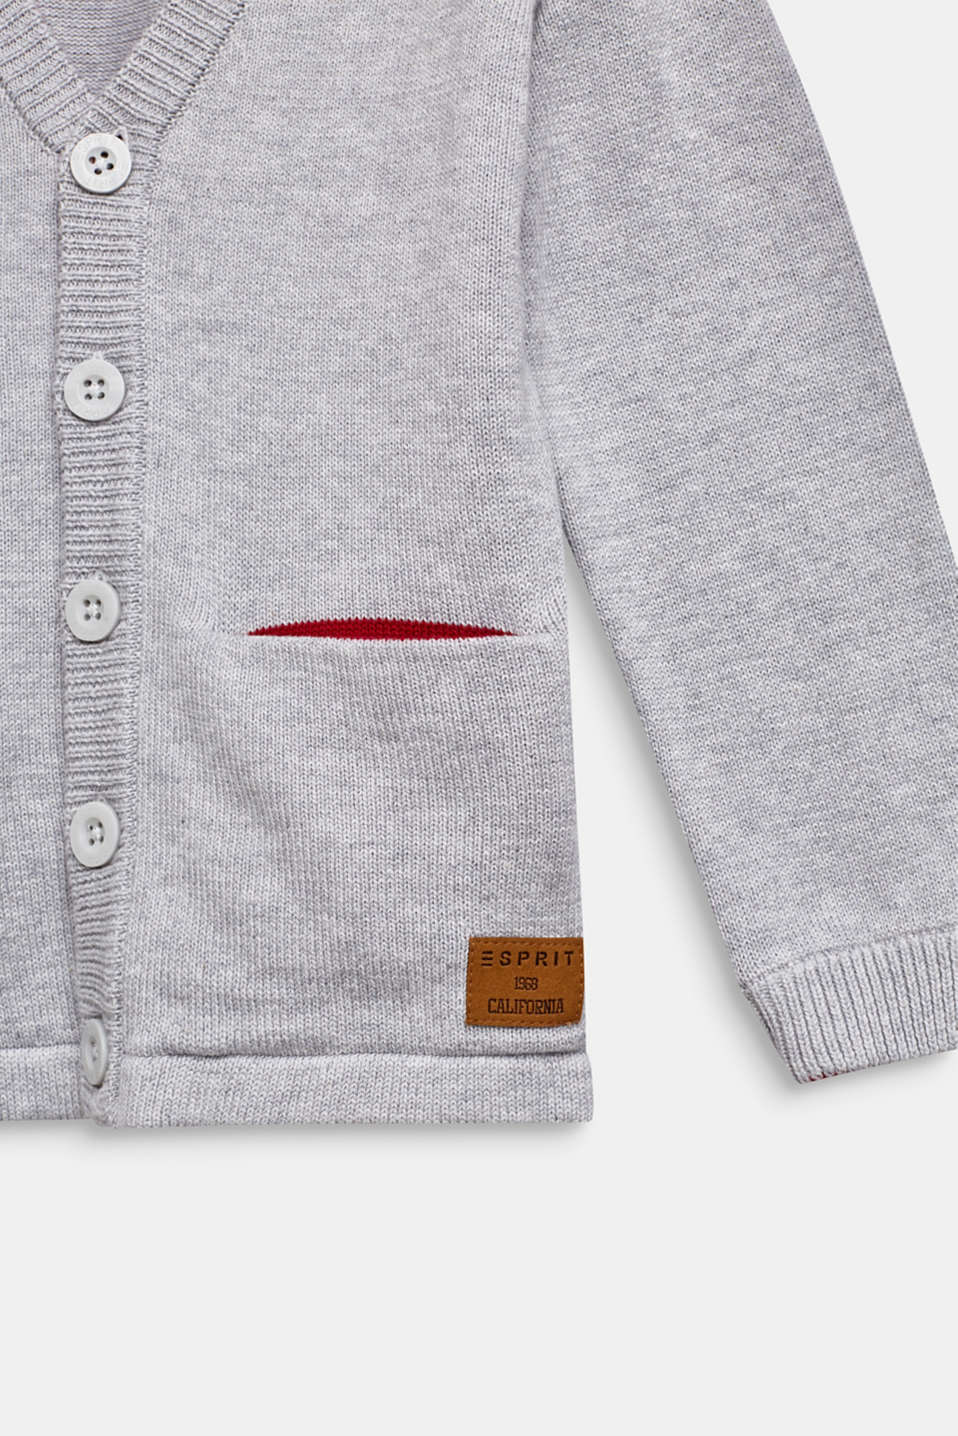 Cardigan in 100% cotton, HEATHER SILVER, detail image number 2